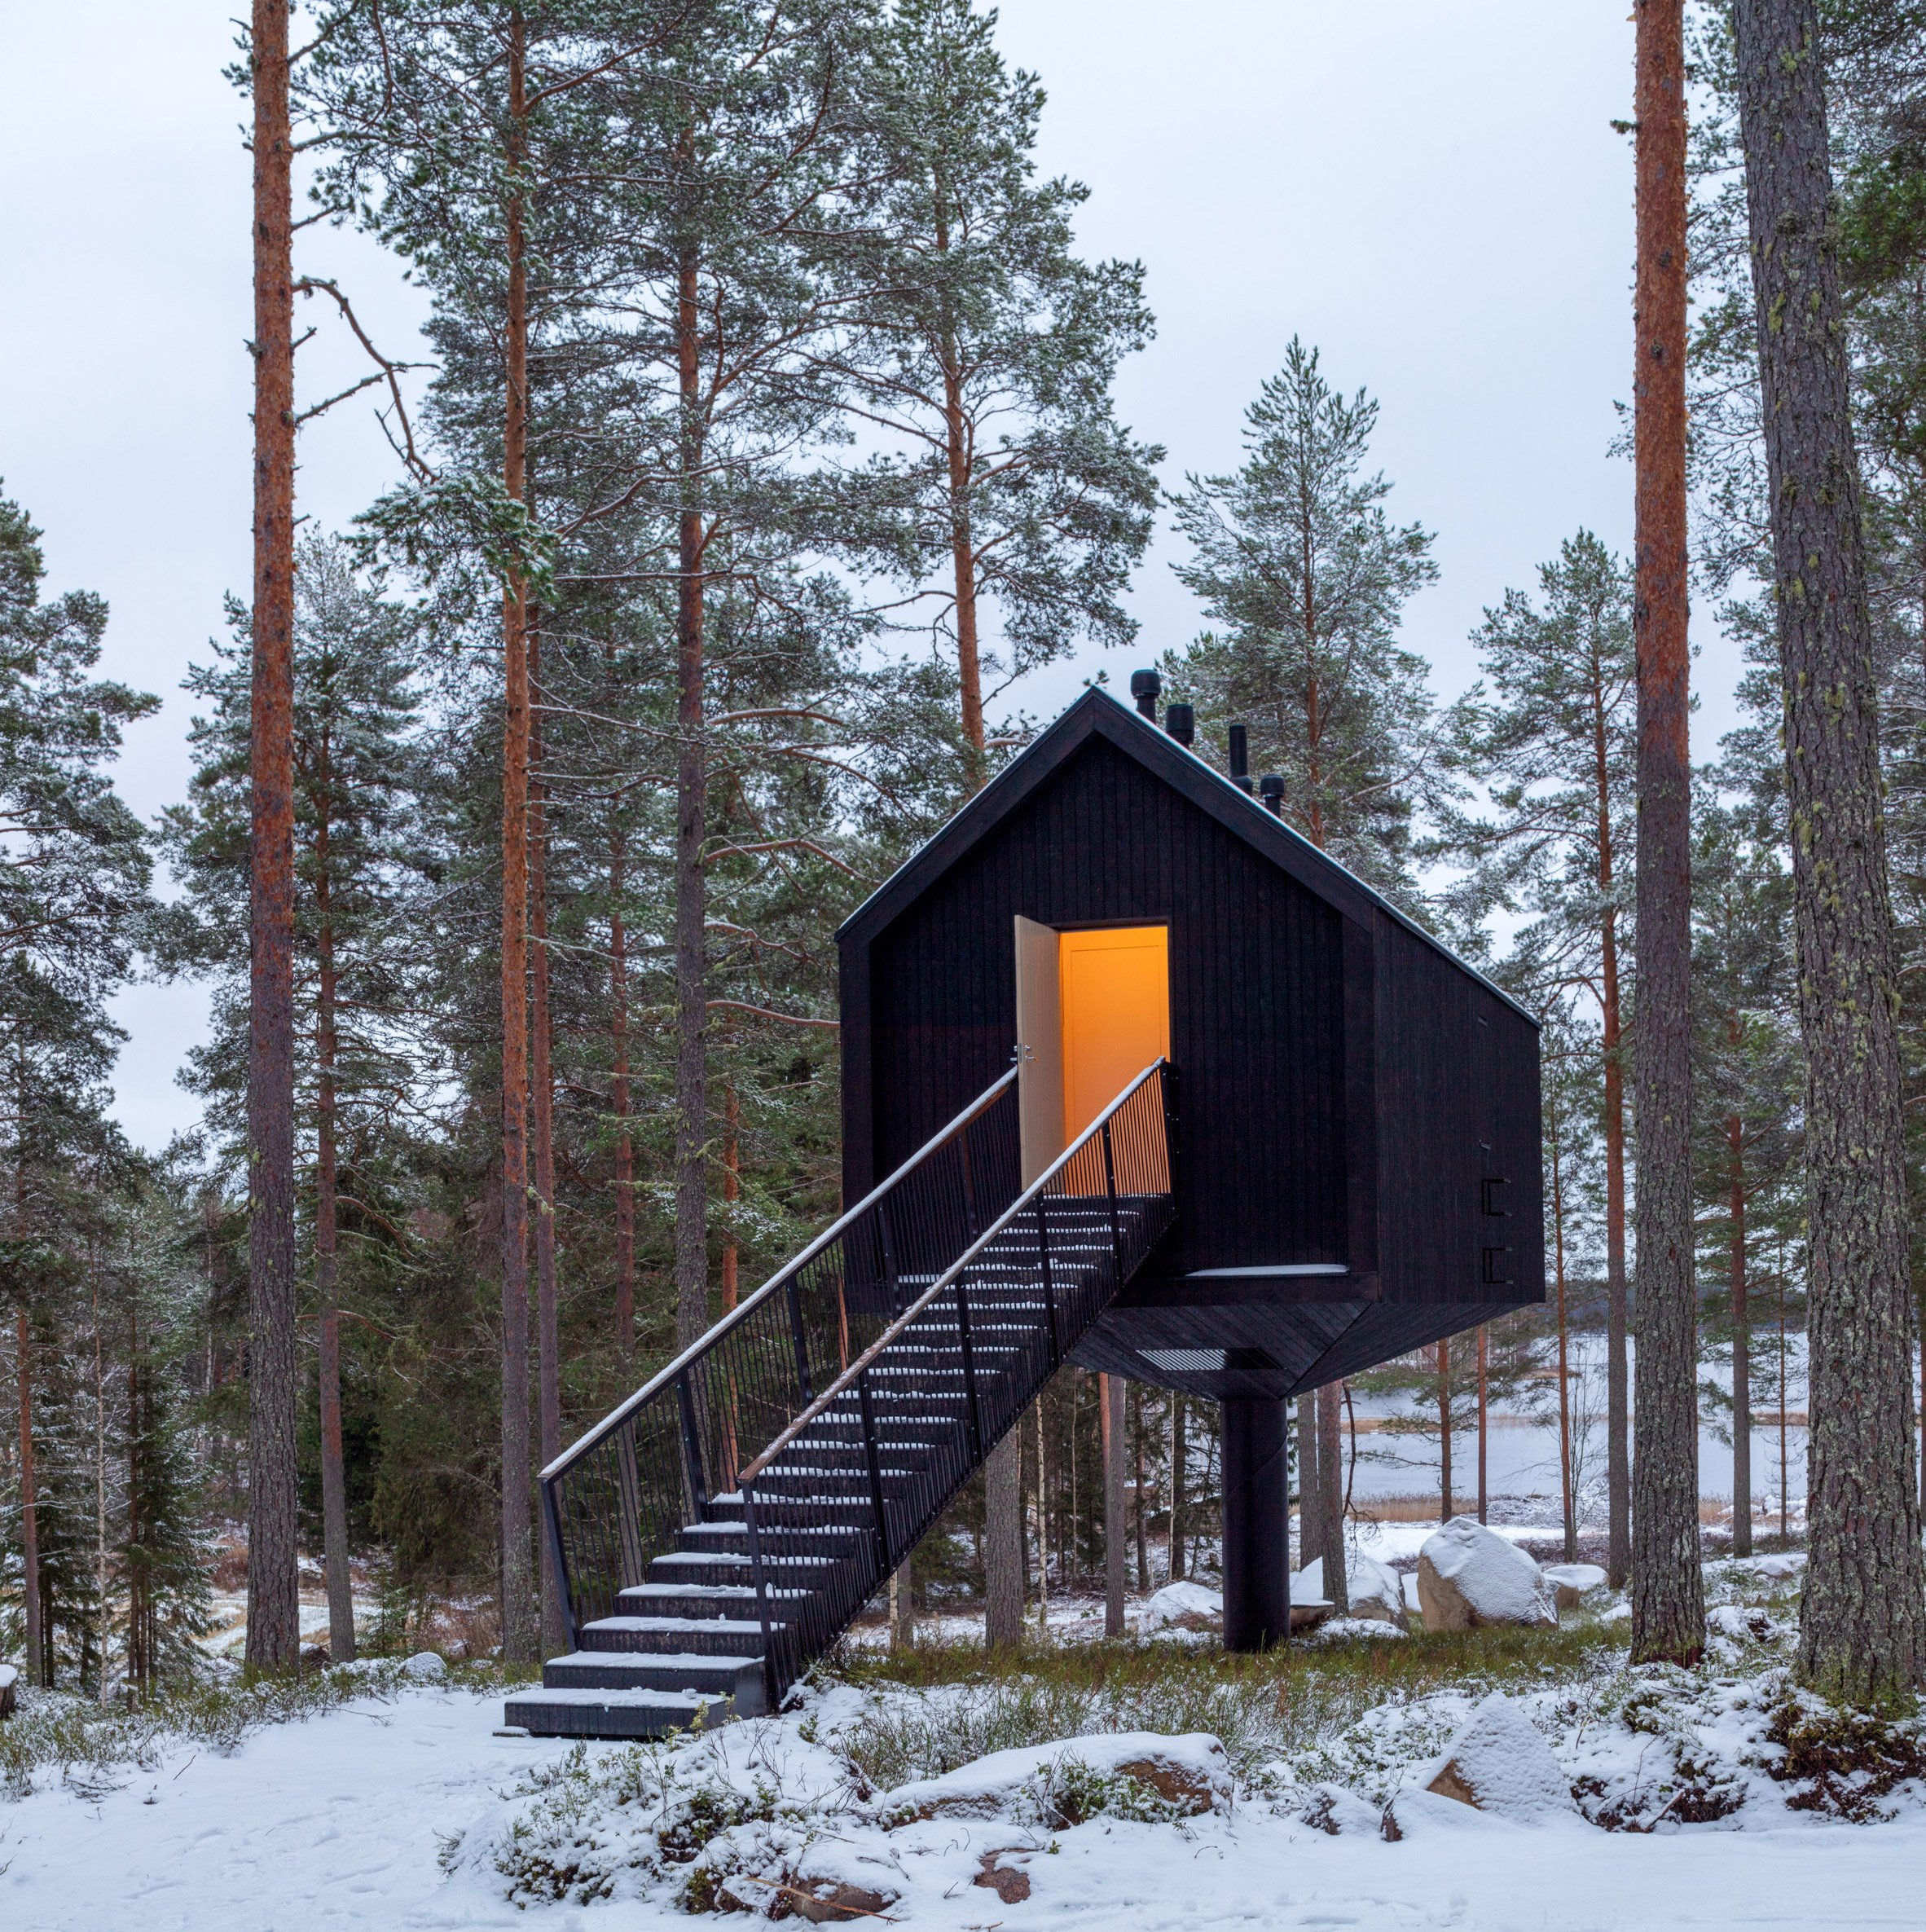 A Finnish cabin clad in black-painted wood